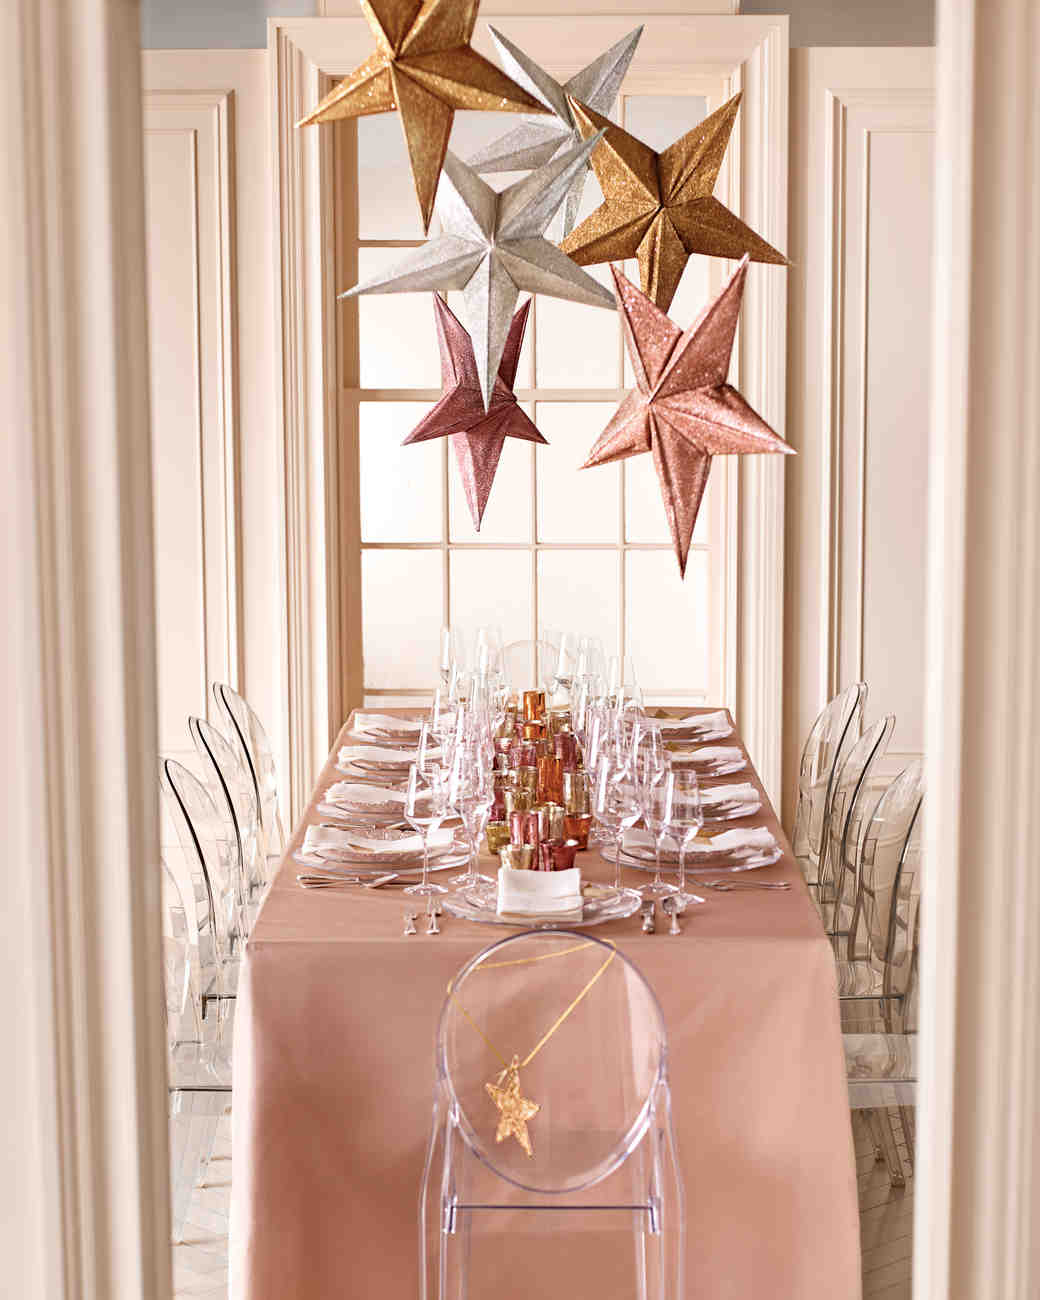 Decoration Fete Setting The Perfect Holiday Table For Any Occasion